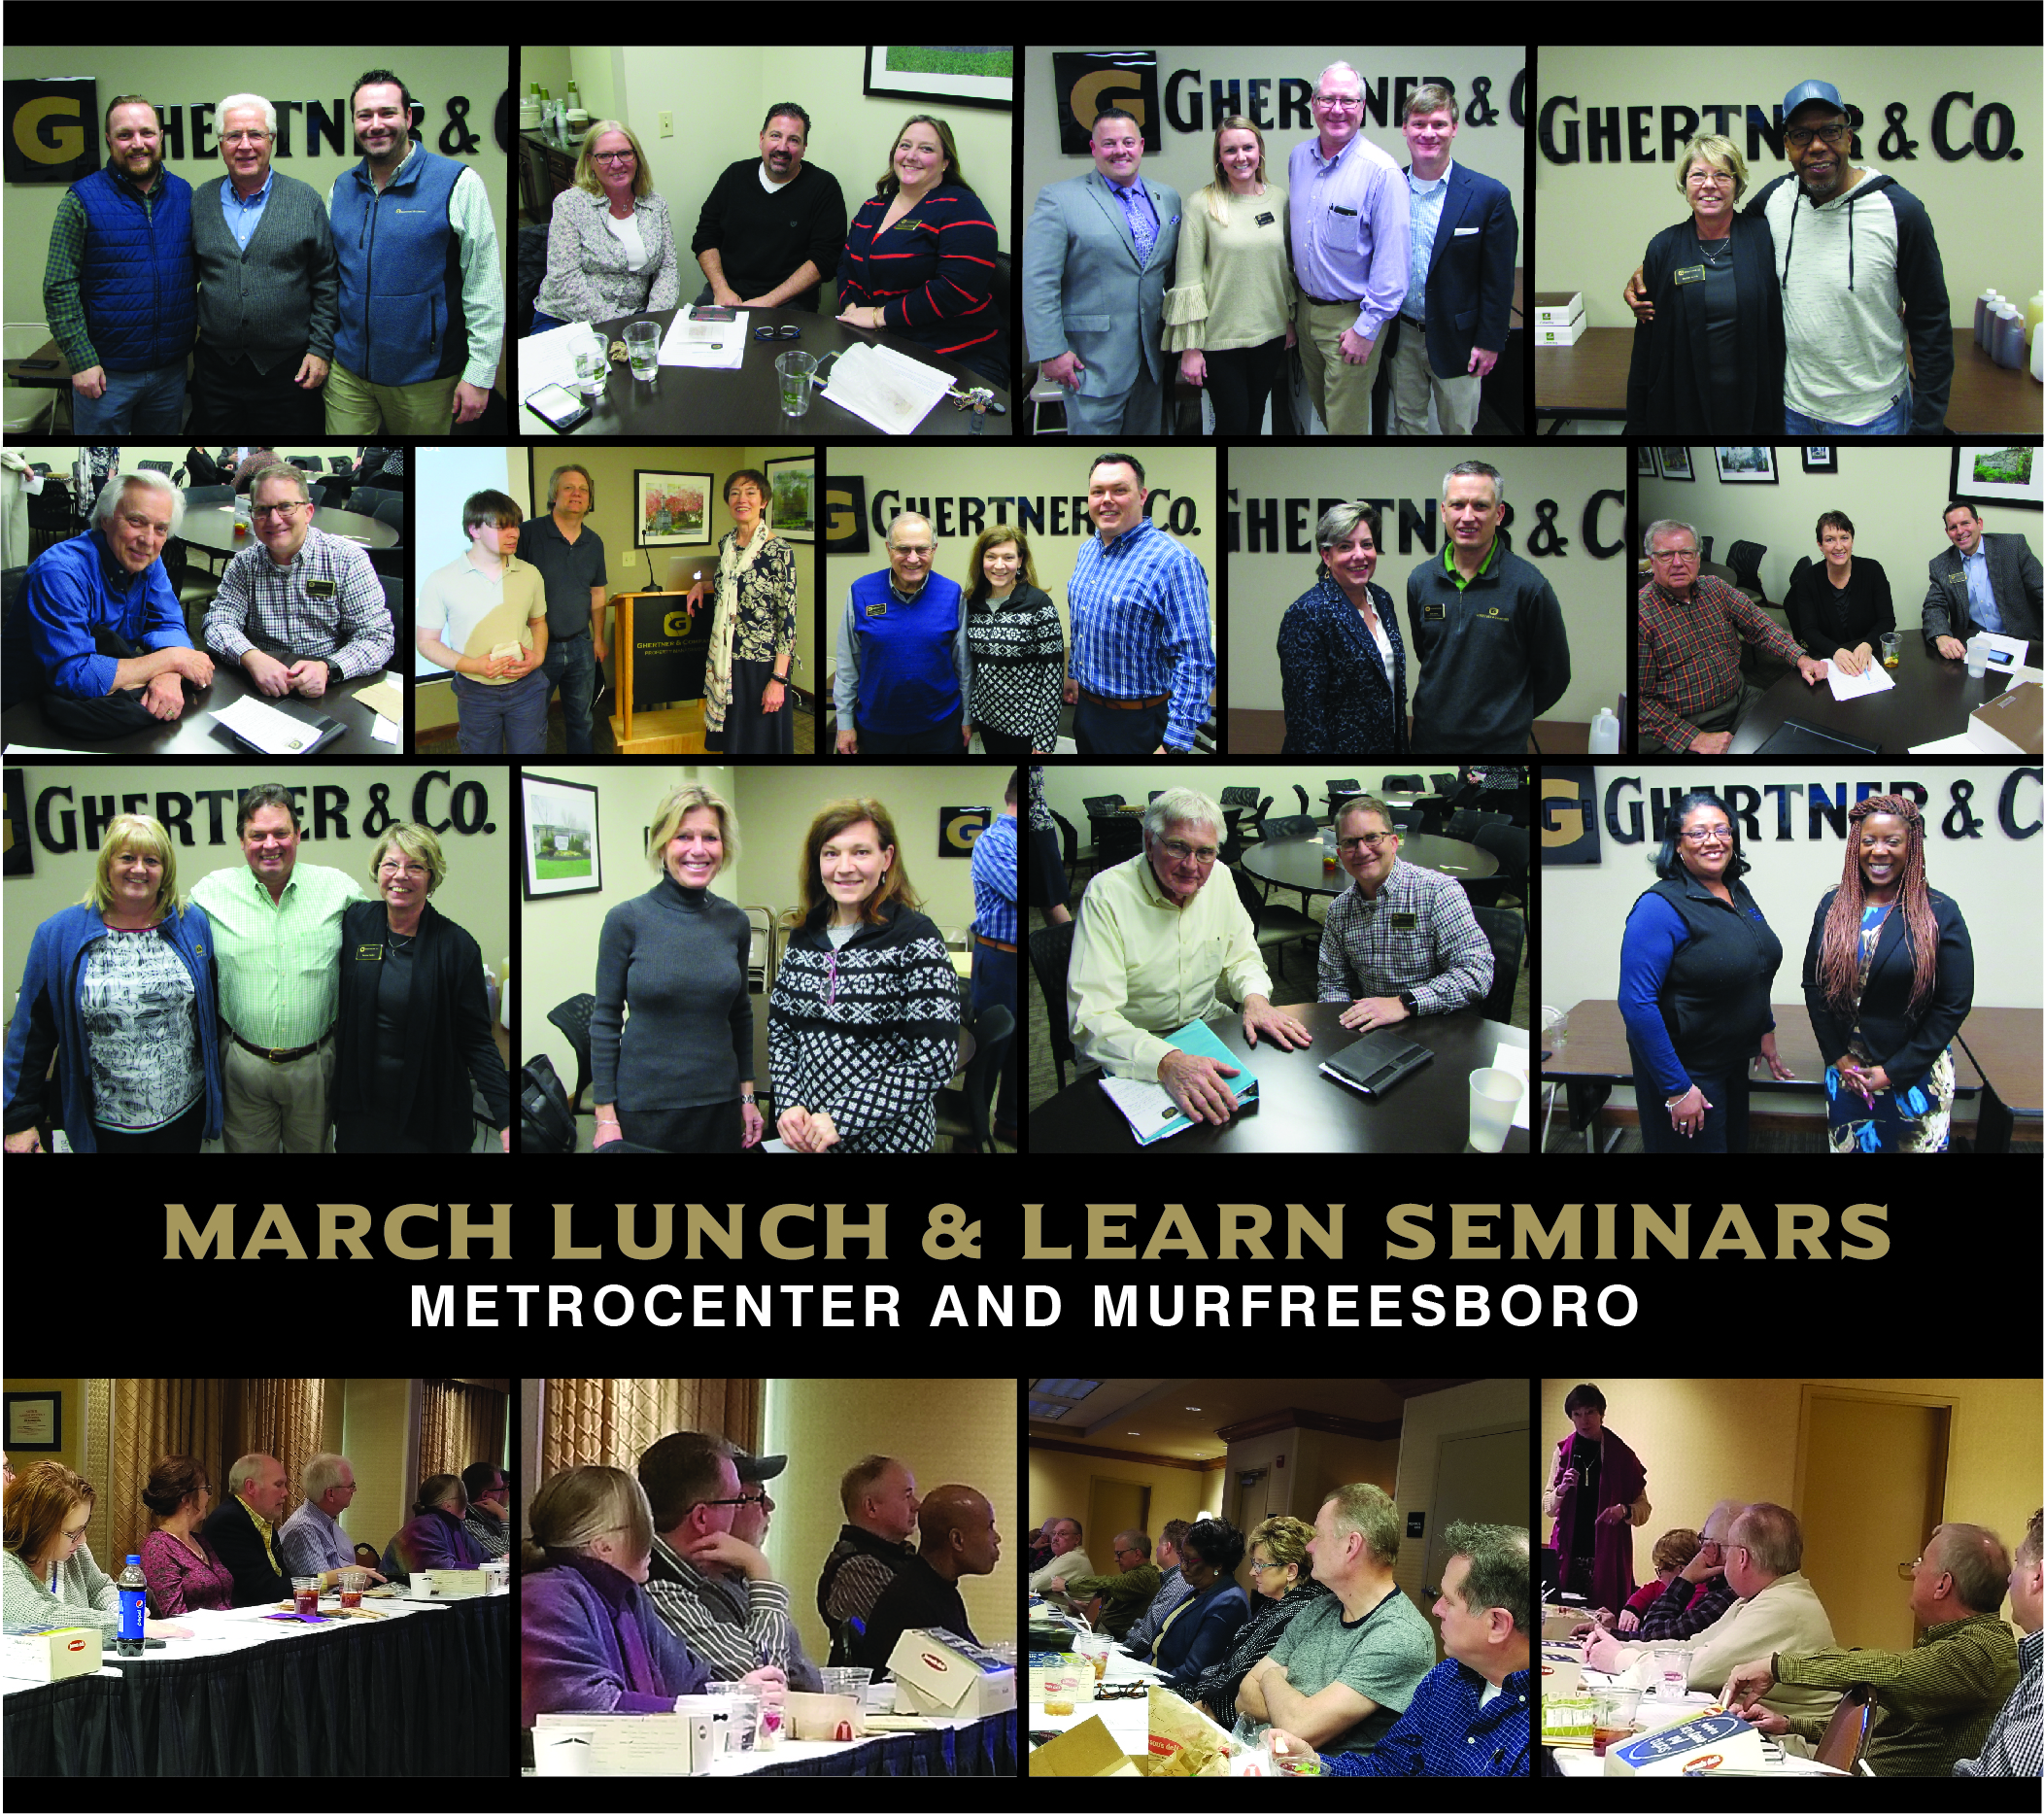 Monthly Lunch & Learn workshops are presented on a variety of topics to better inform and equip HOA Board of Directors in their role. HOAs managed by Ghertner & Company can have their Board members attend at no cost and a complimentary lunch is served. Ask your Community Association Manager about attending or contact Theresa Savich at theresa.savich@ghertner.com.